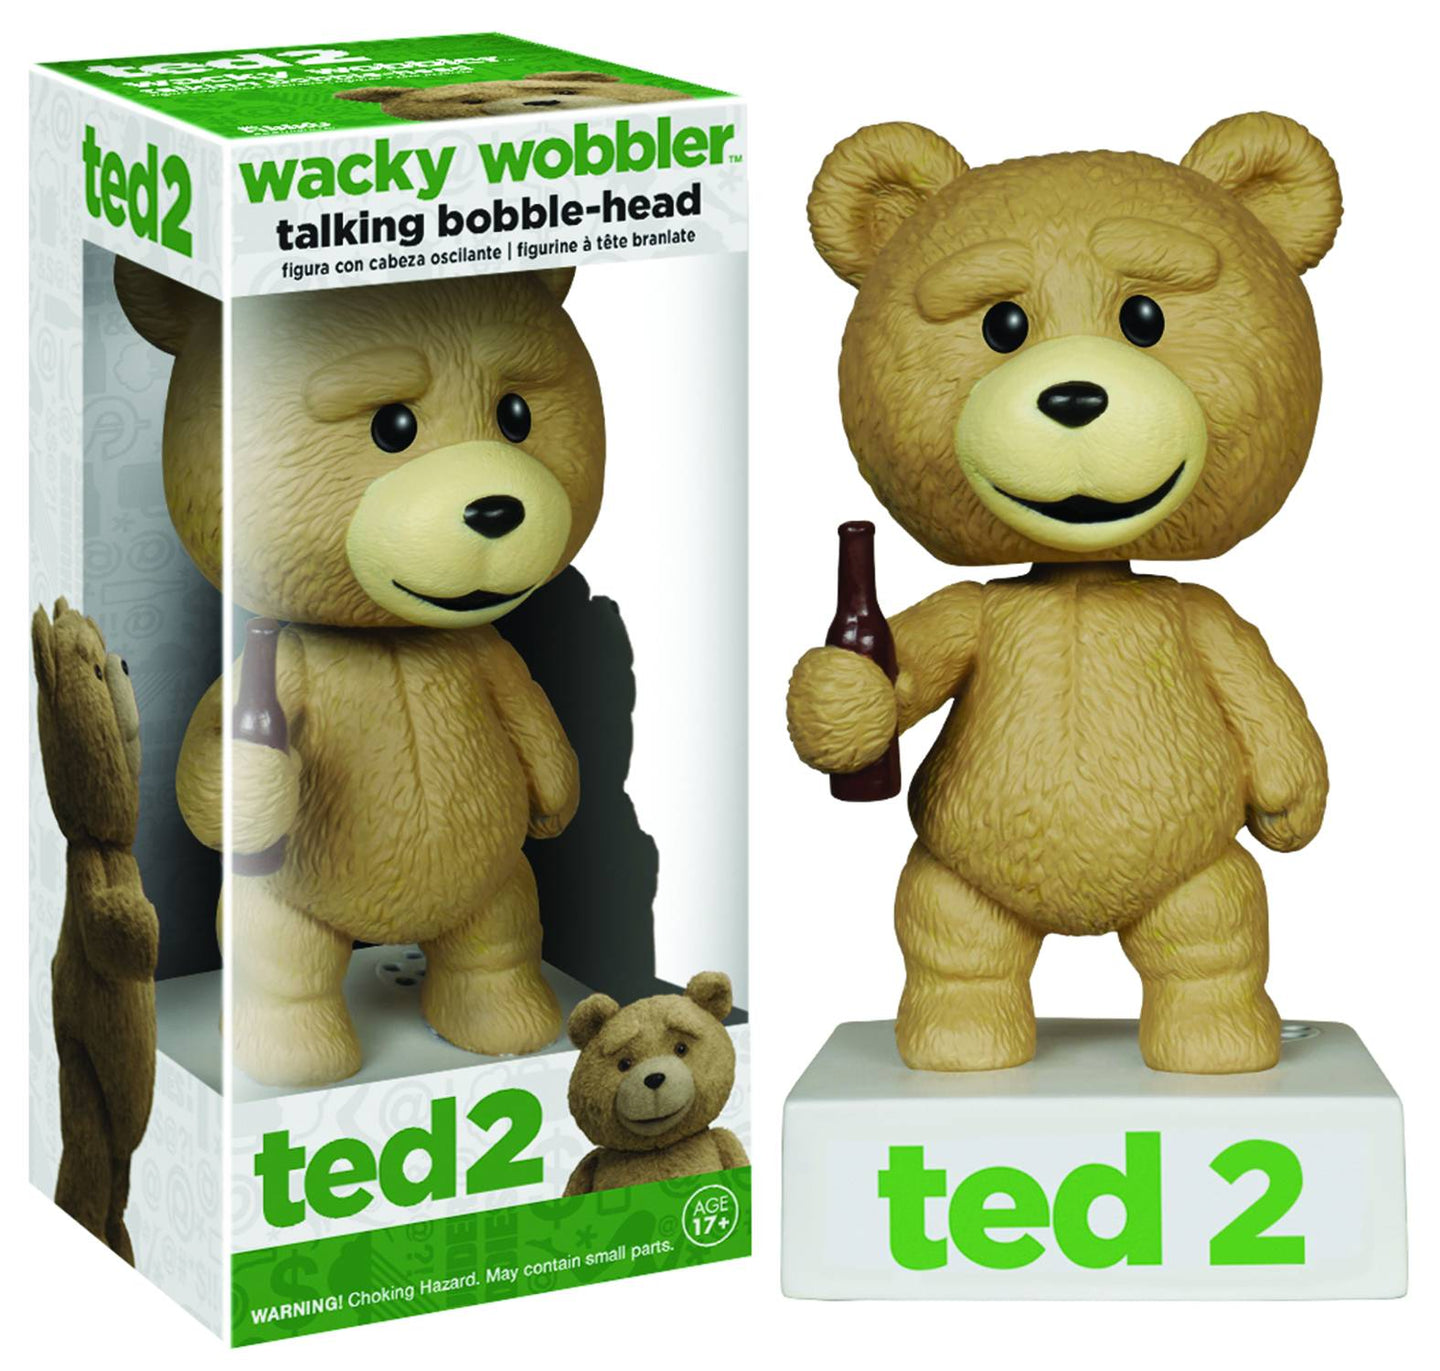 Ted 2 Talking Wacky Wobbler Vinyl Figure